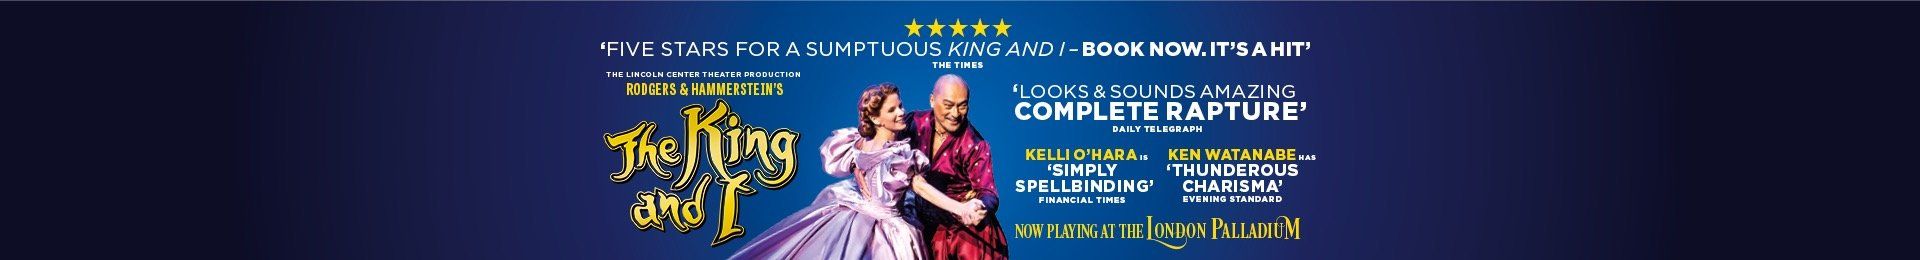 The King and I and complimentary meal with Prosecco at Busaba banner image